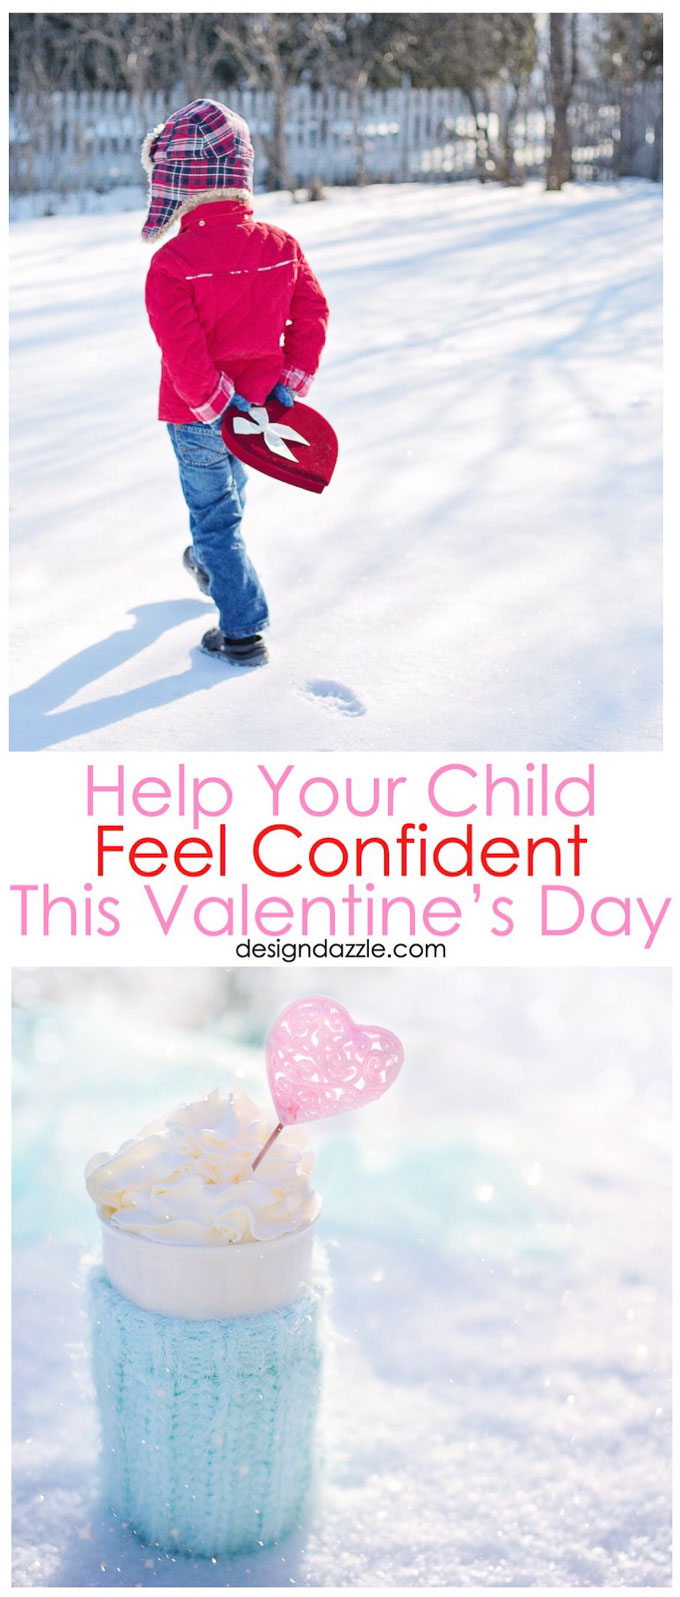 Help Your Child Feel Confident This Valentine's Day